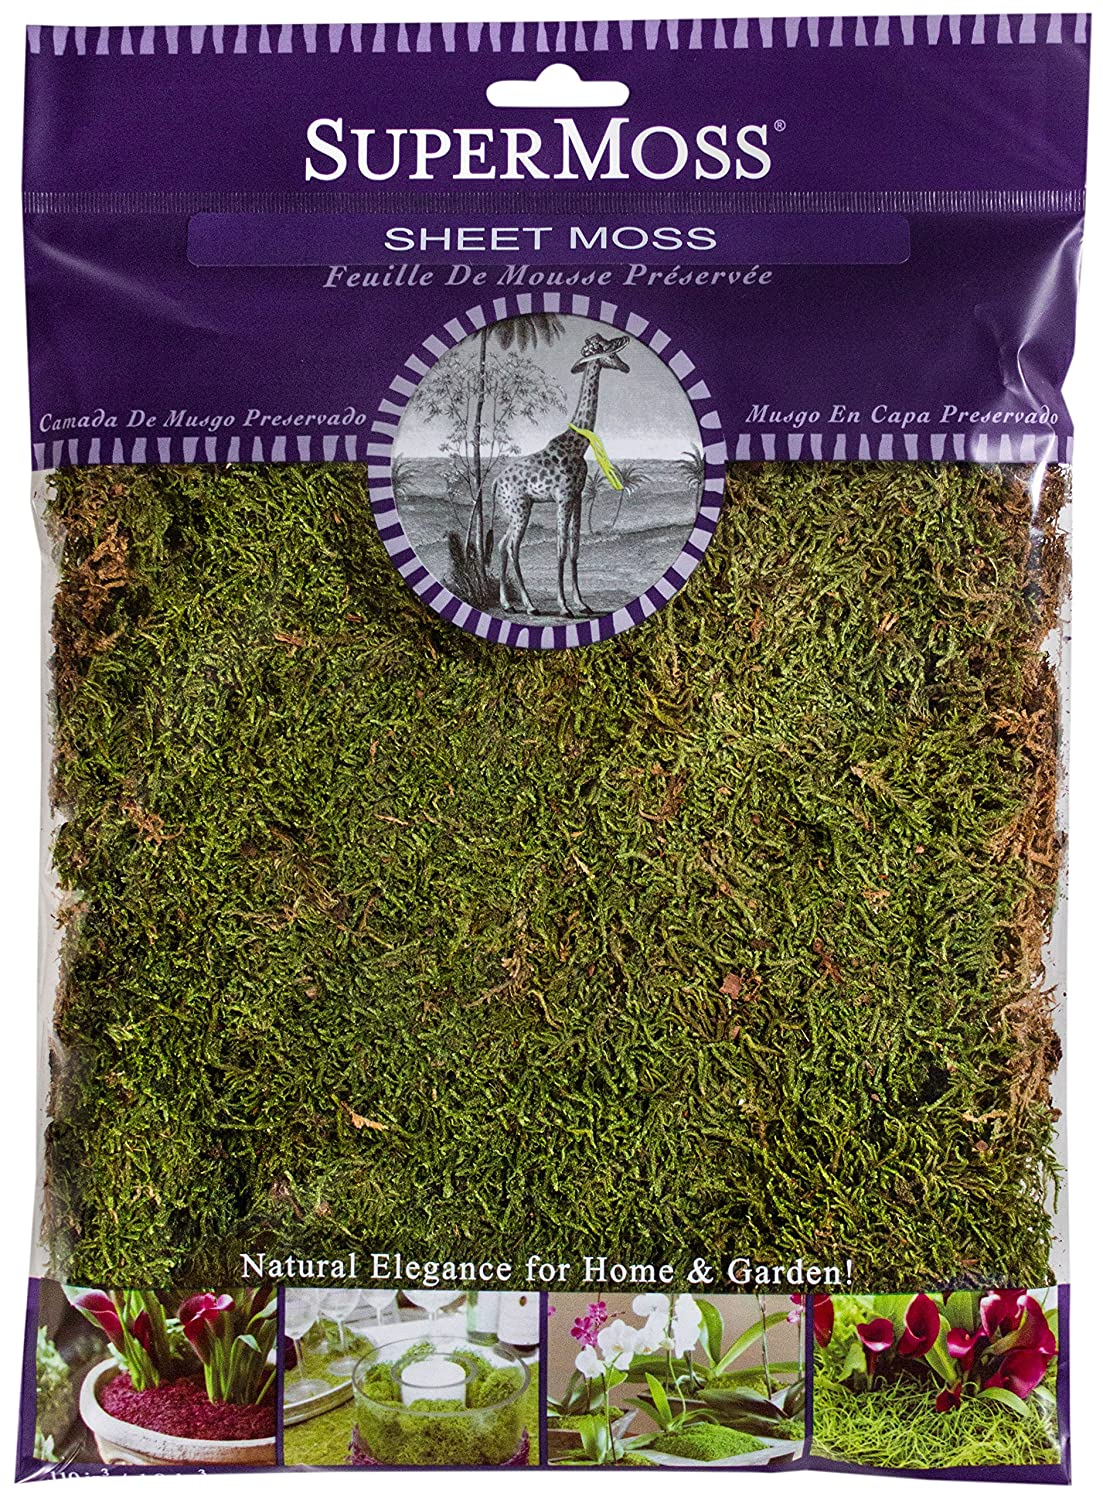 SuperMoss (21509) Sheet Moss Preserved, Fresh Green, 2oz 7 59834 21509 7